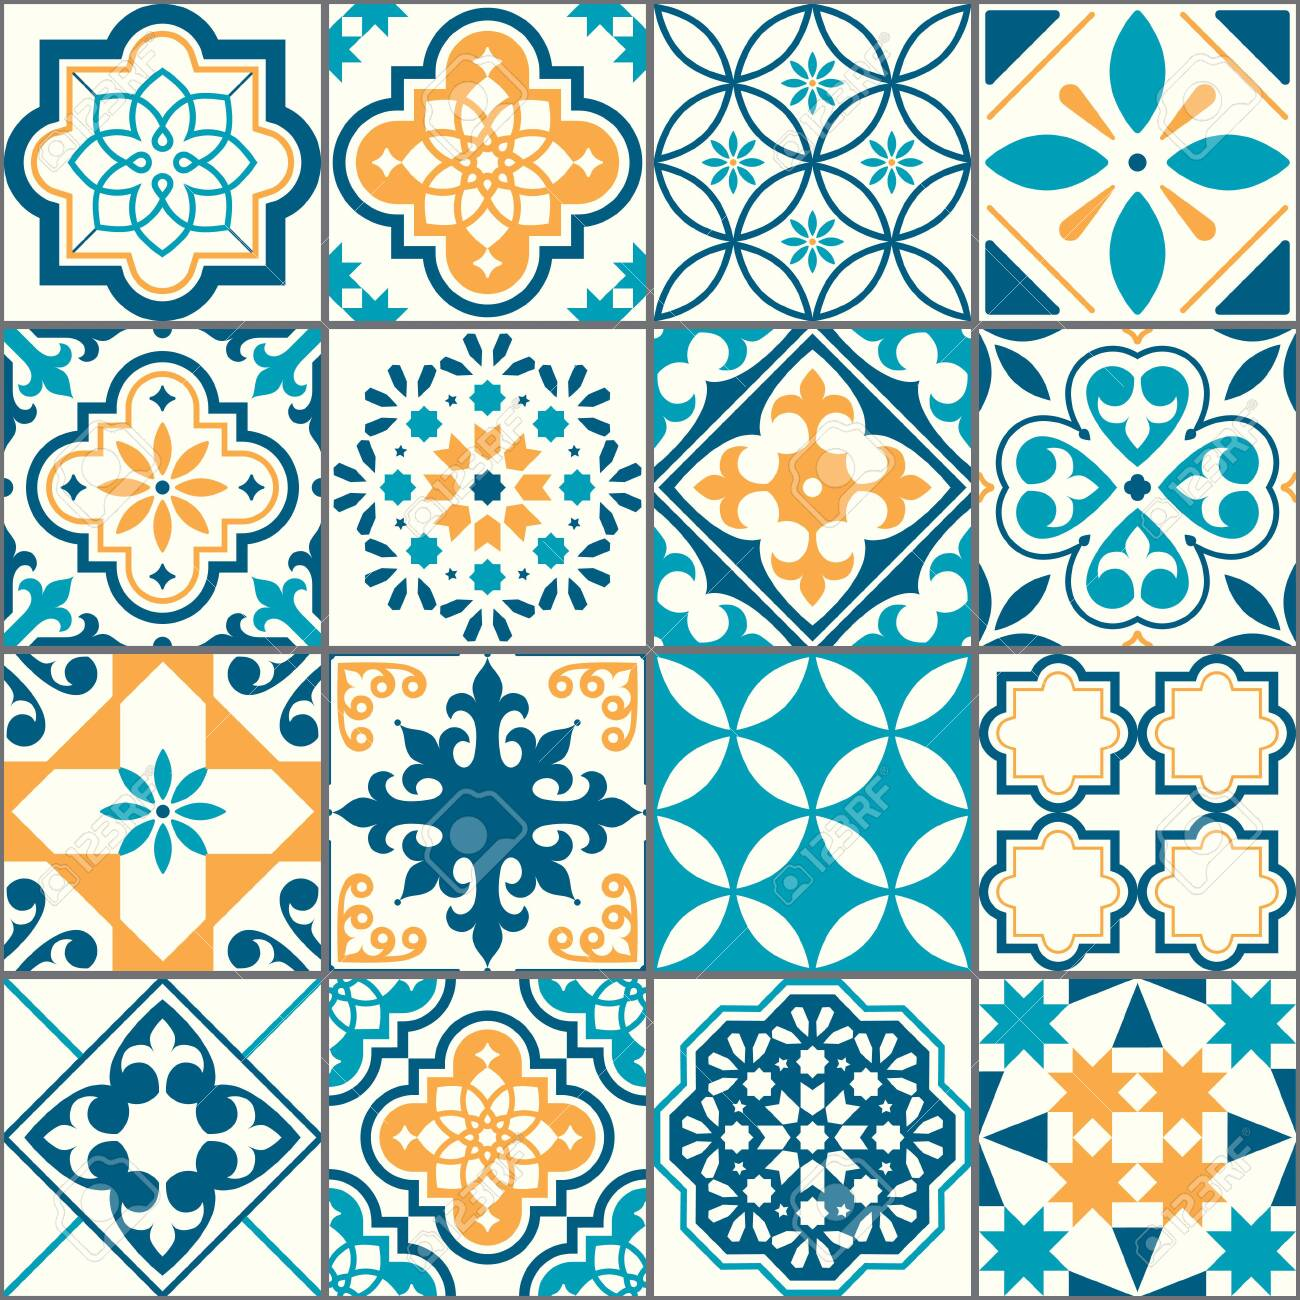 Portuguese or Spanish Azujelo vector seamless tiles design - Lisbon retro truquoise and yellow pattern, tile big collection - 141083170